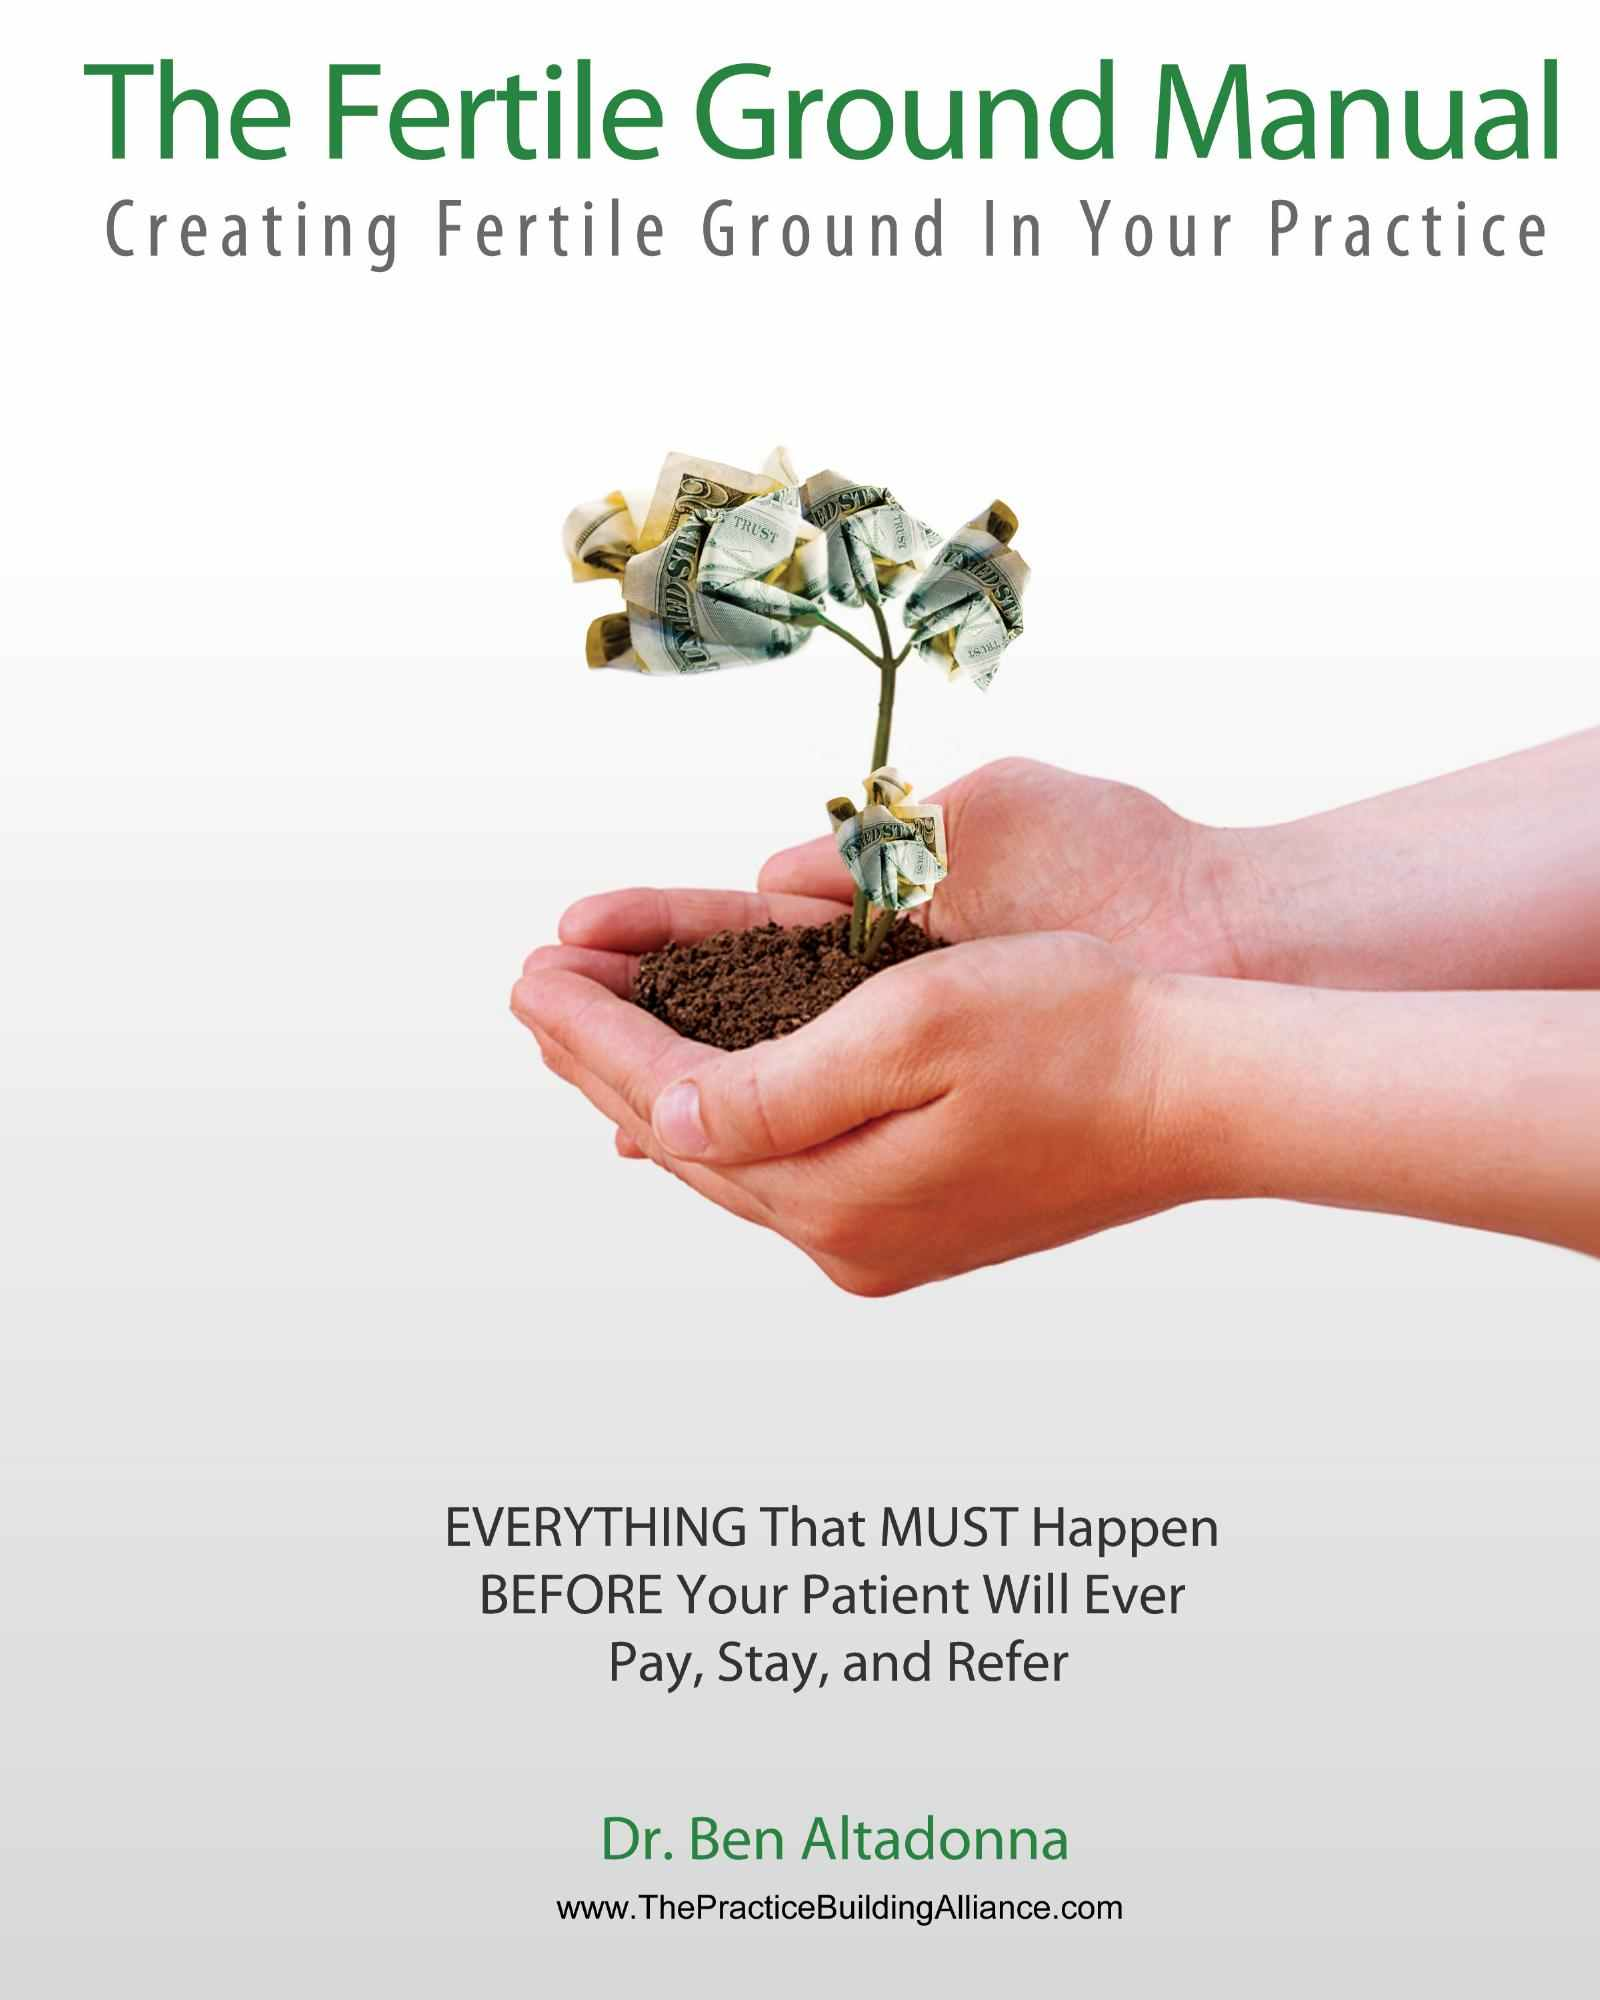 The Fertile Ground Manual